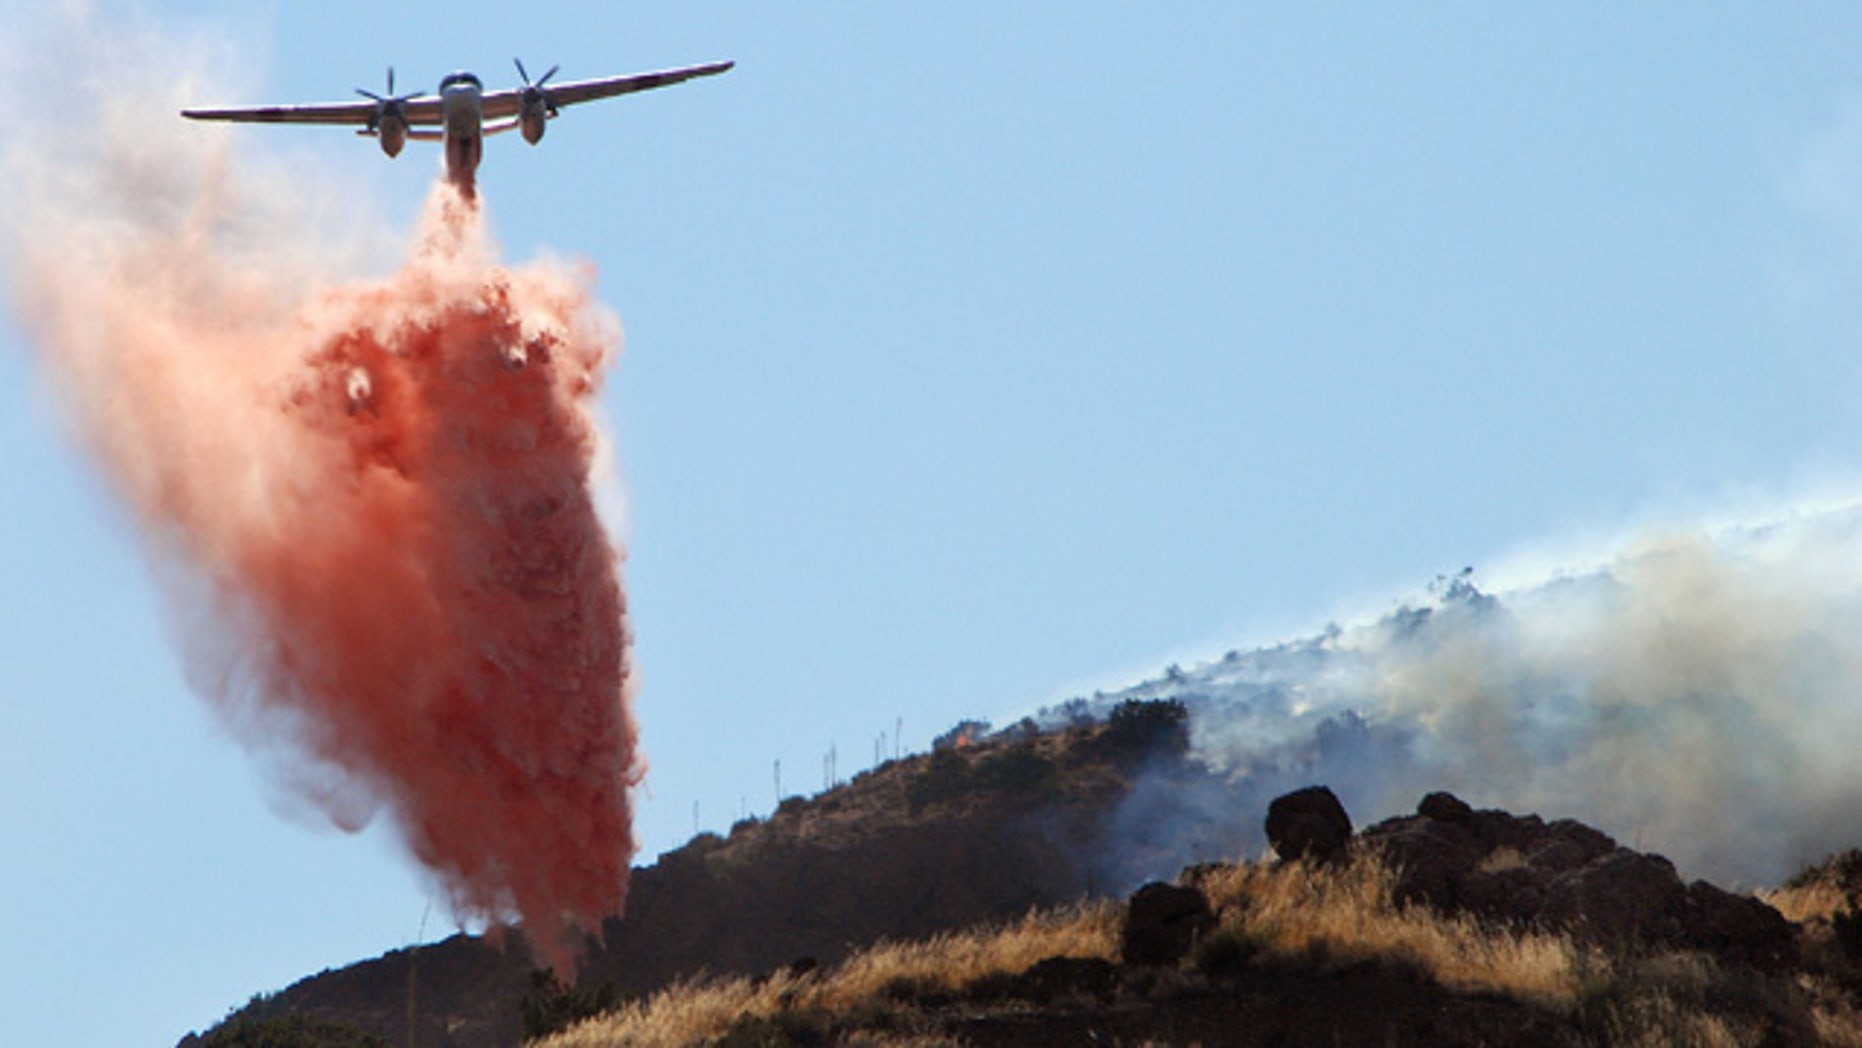 Sept. 5: An air tanker drops retardant next to a flank of a wildfire in Agua Dulce, Calif.